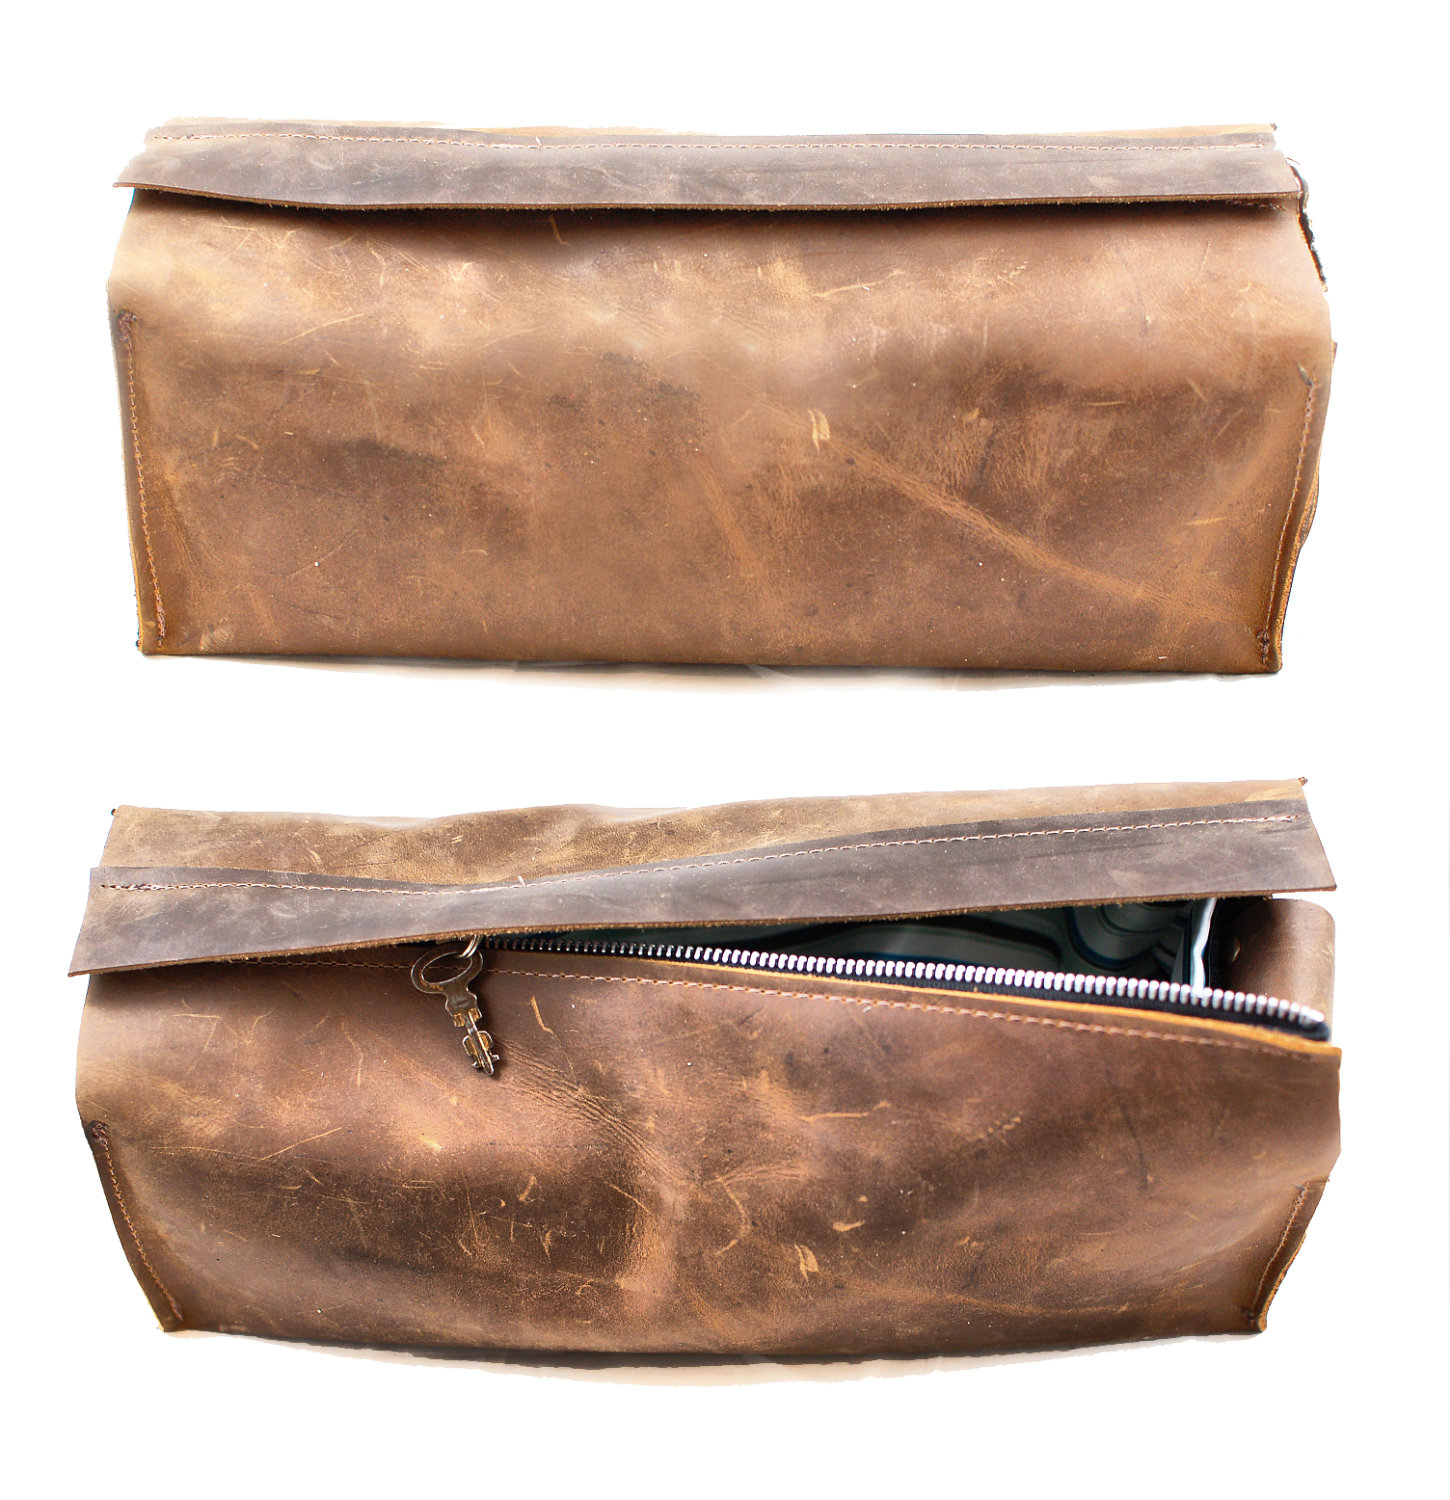 divina denuevo | men's grooming leather toiletry bag